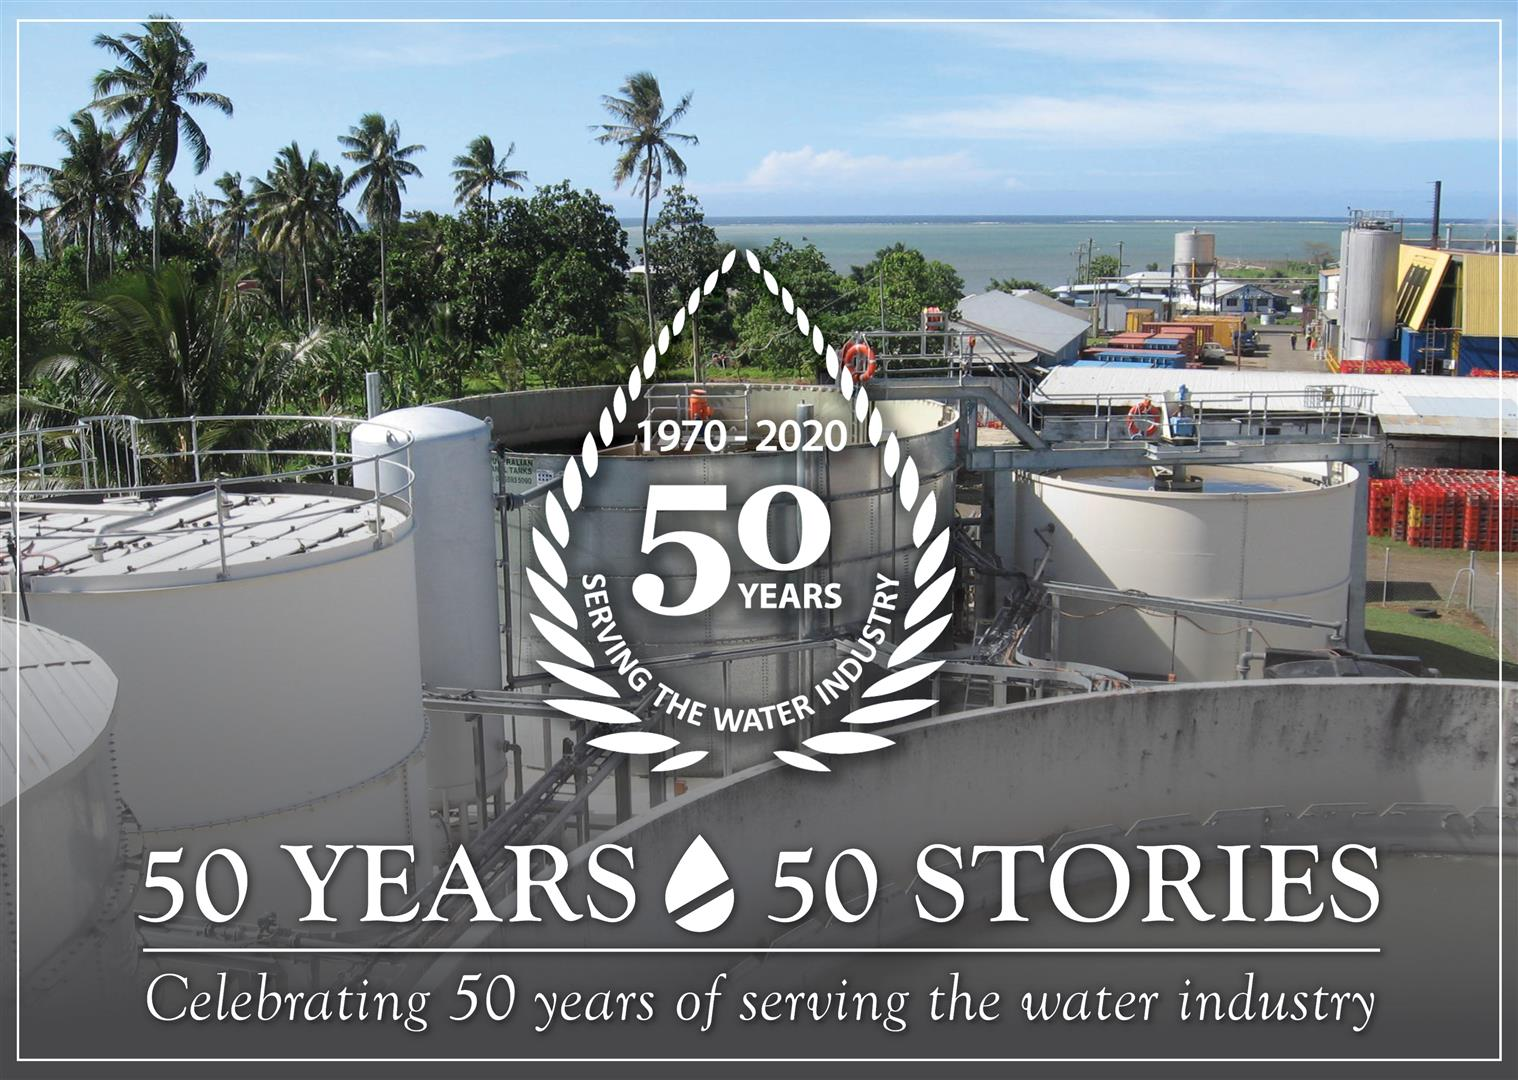 50 Years - 50 Stories - Samoa Brewery Wastewater Aquatec Maxcon